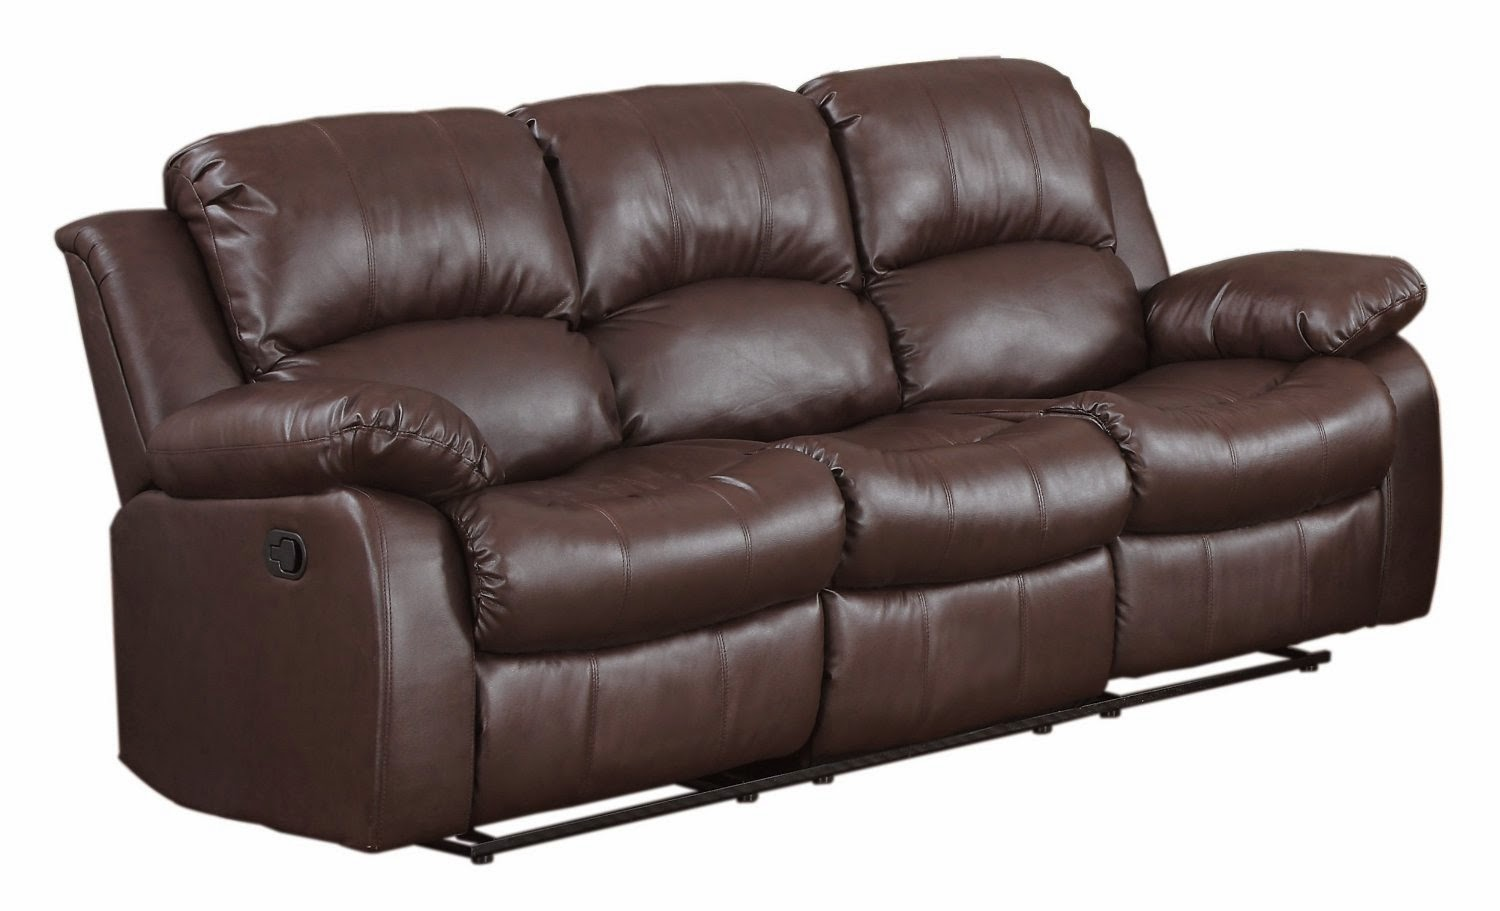 Cheap Recliner Sofas For Sale: Sectional Reclining Sofas ...